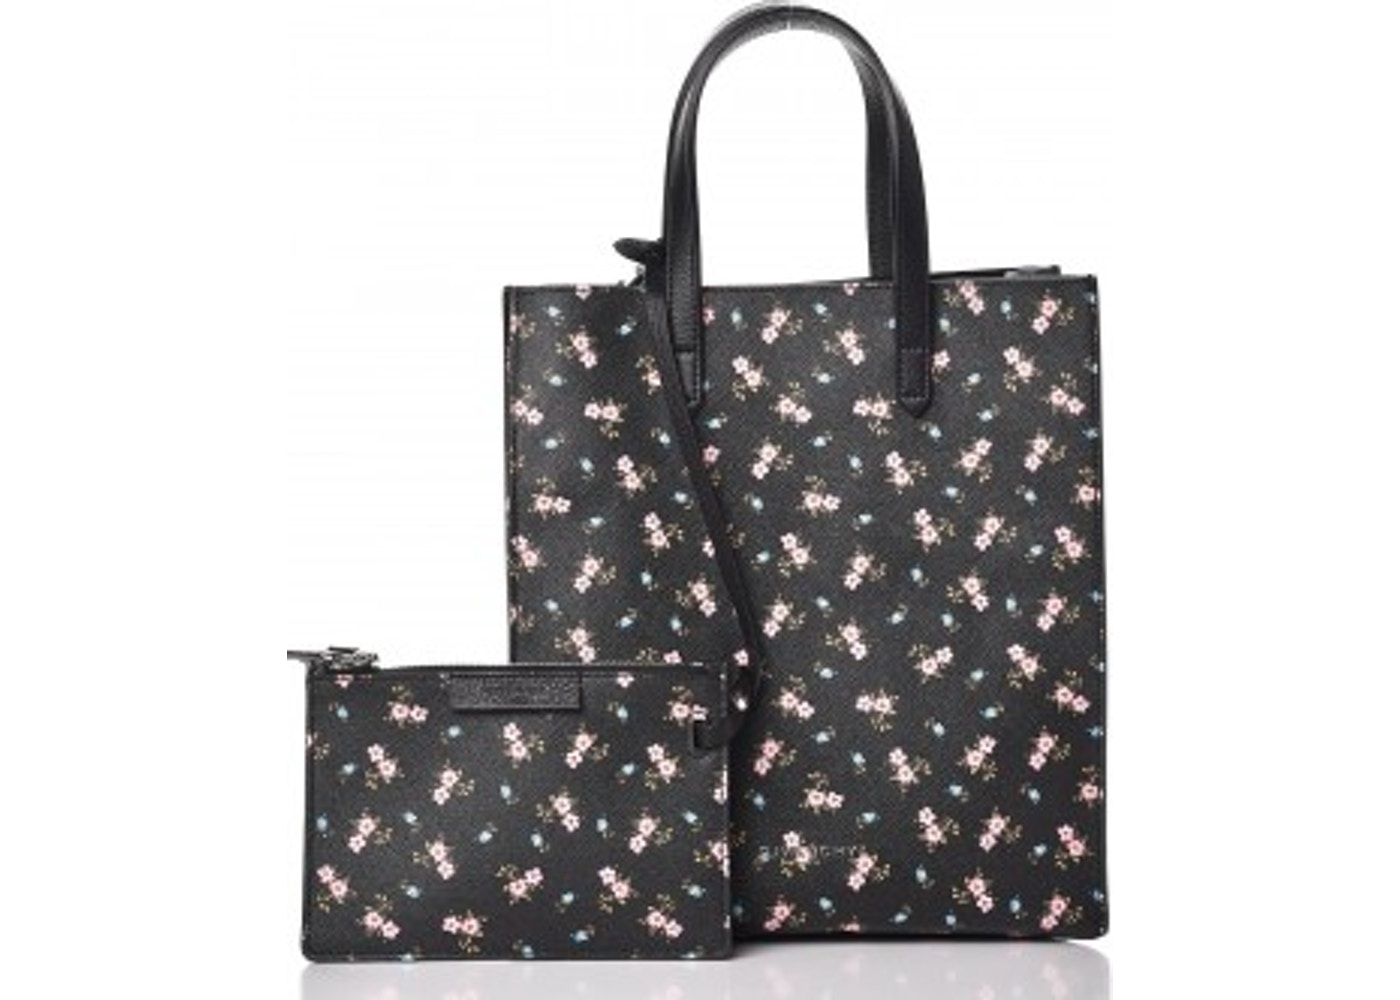 096e82b13960 Givenchy Stargate Tote Hibiscus Print With Accessories Small Black  Multicolor. Hibiscus Print With Accessories Small Black Multicolor